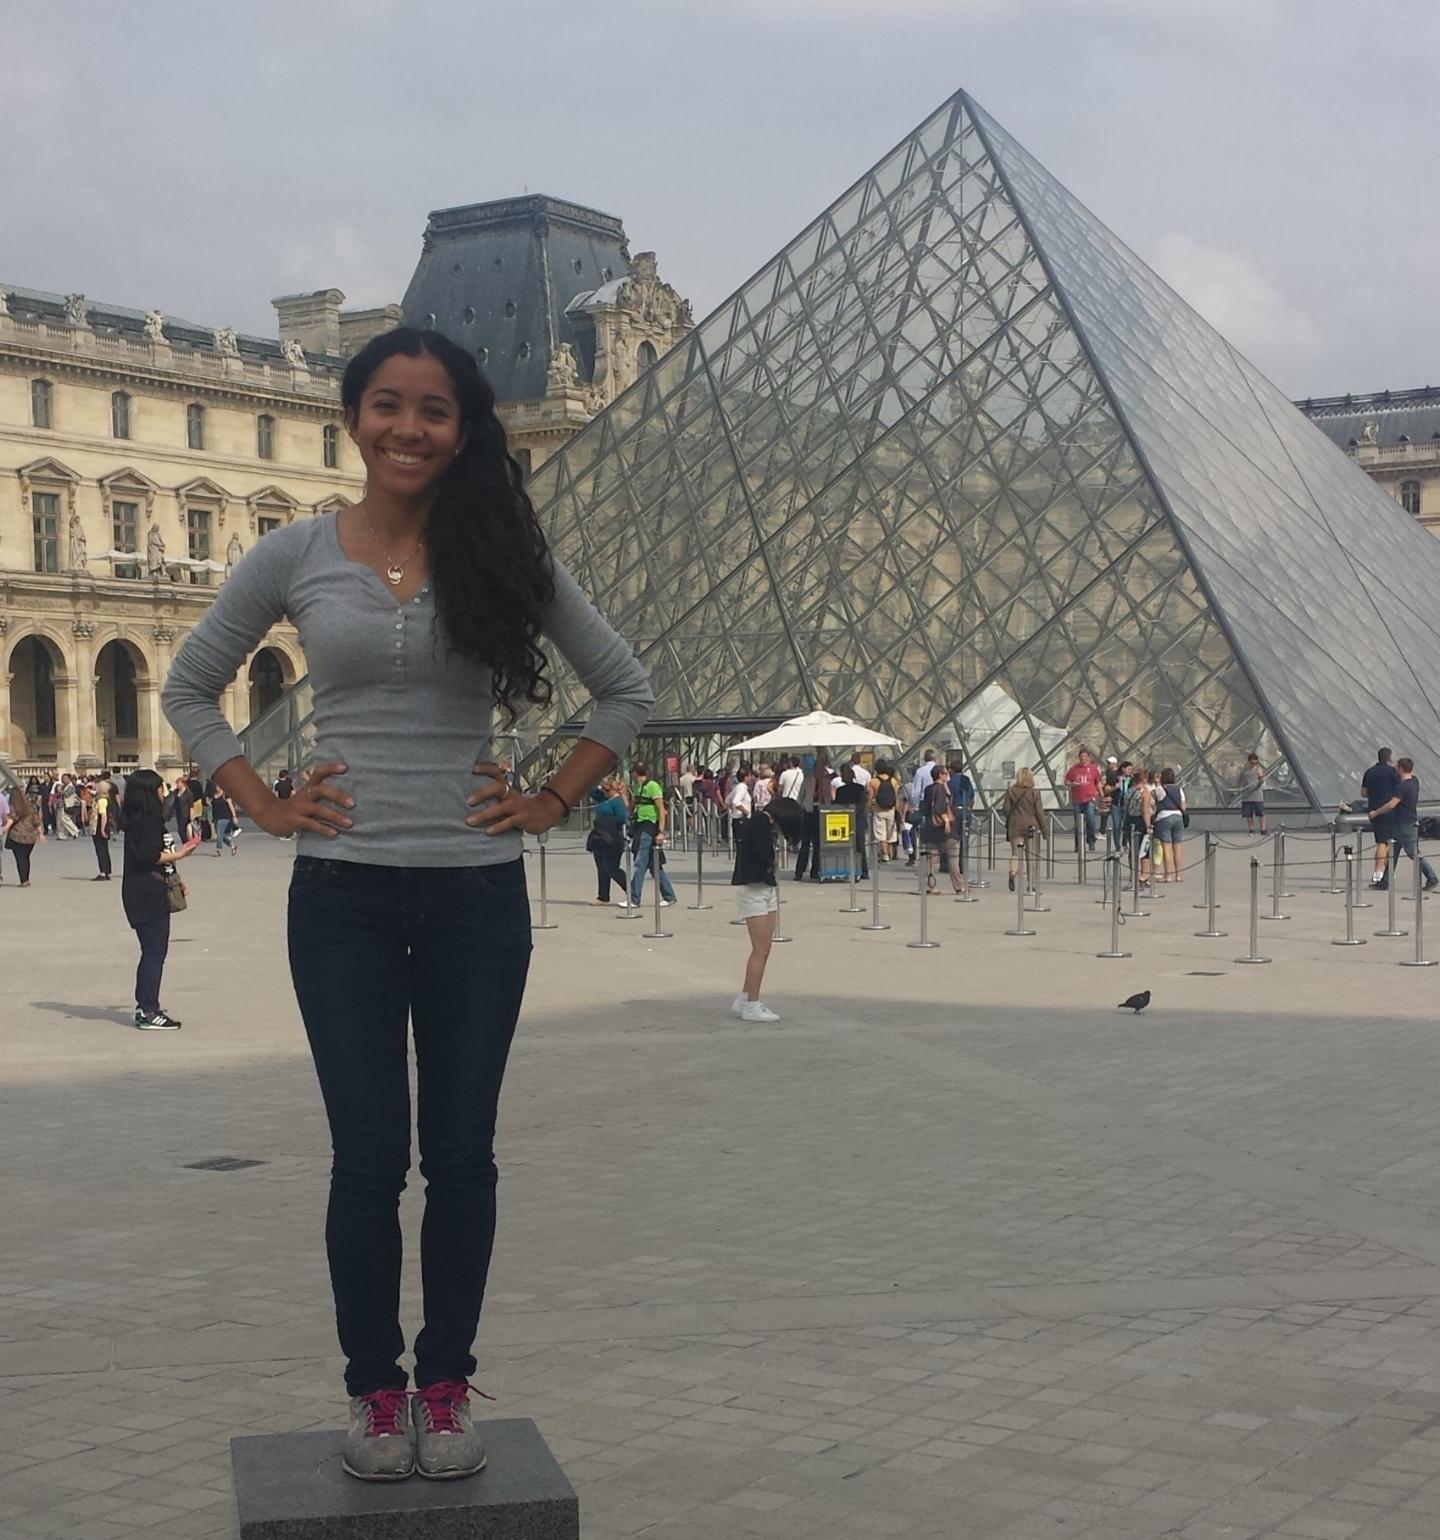 Standing outside the Musee de Louvre in Paris